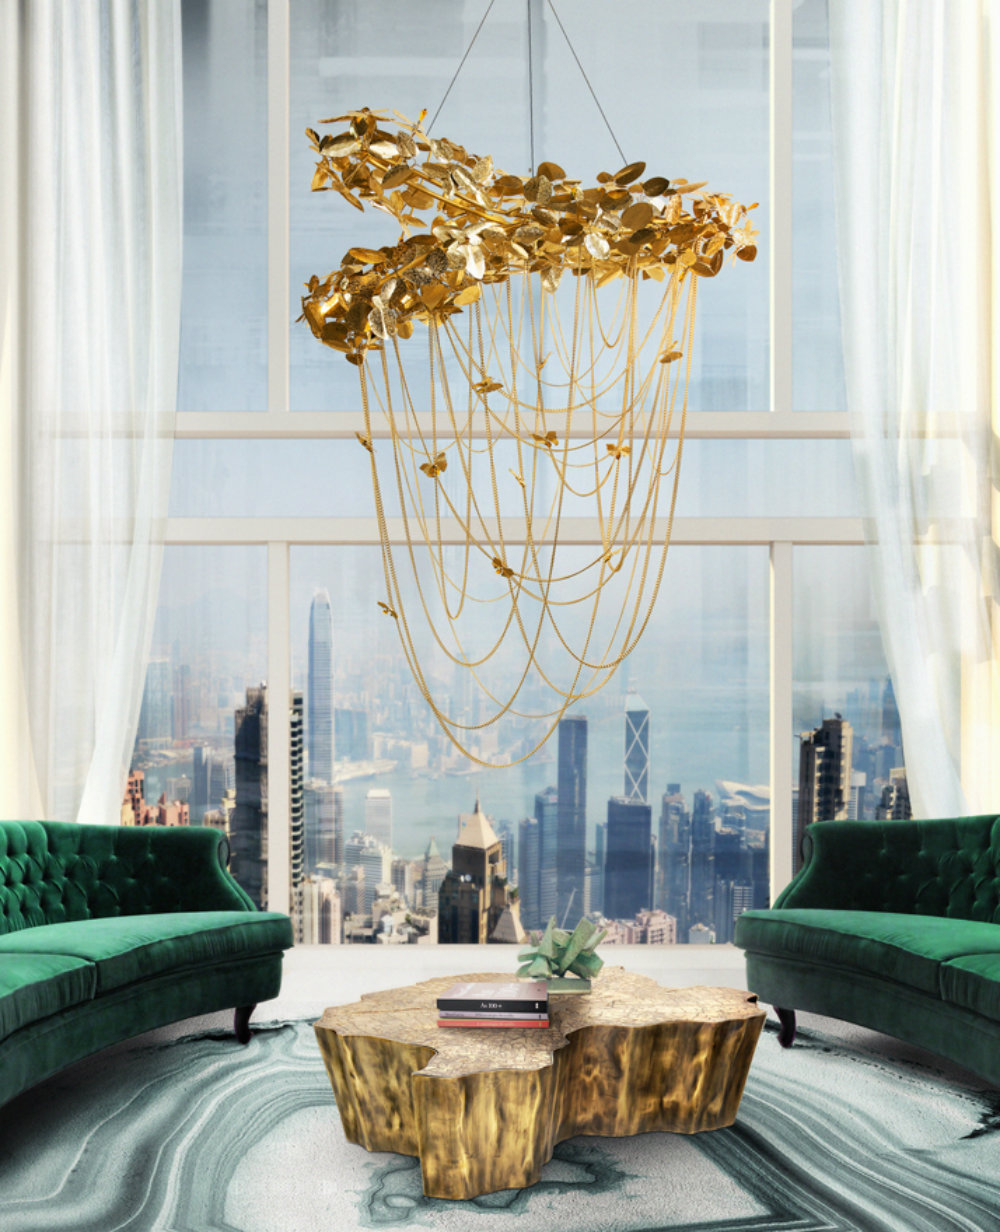 Lighting Inspiration: 5 Outstanding Chandelier For Your Home Decor